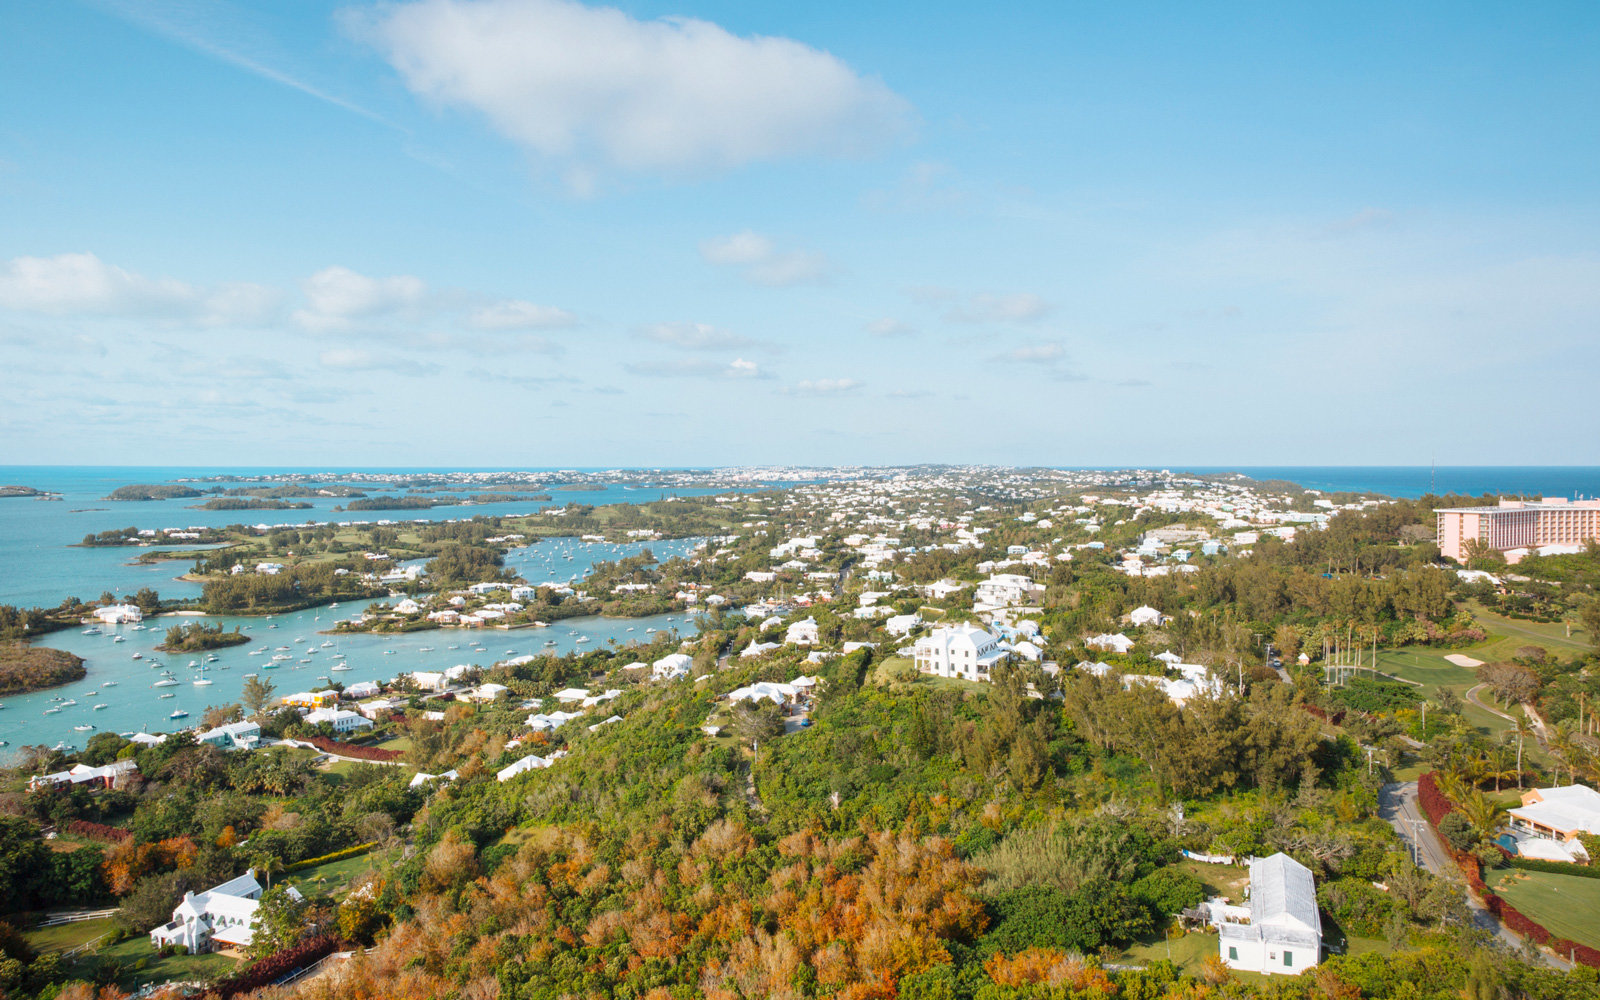 How to Spend a Perfect Day in Bermuda